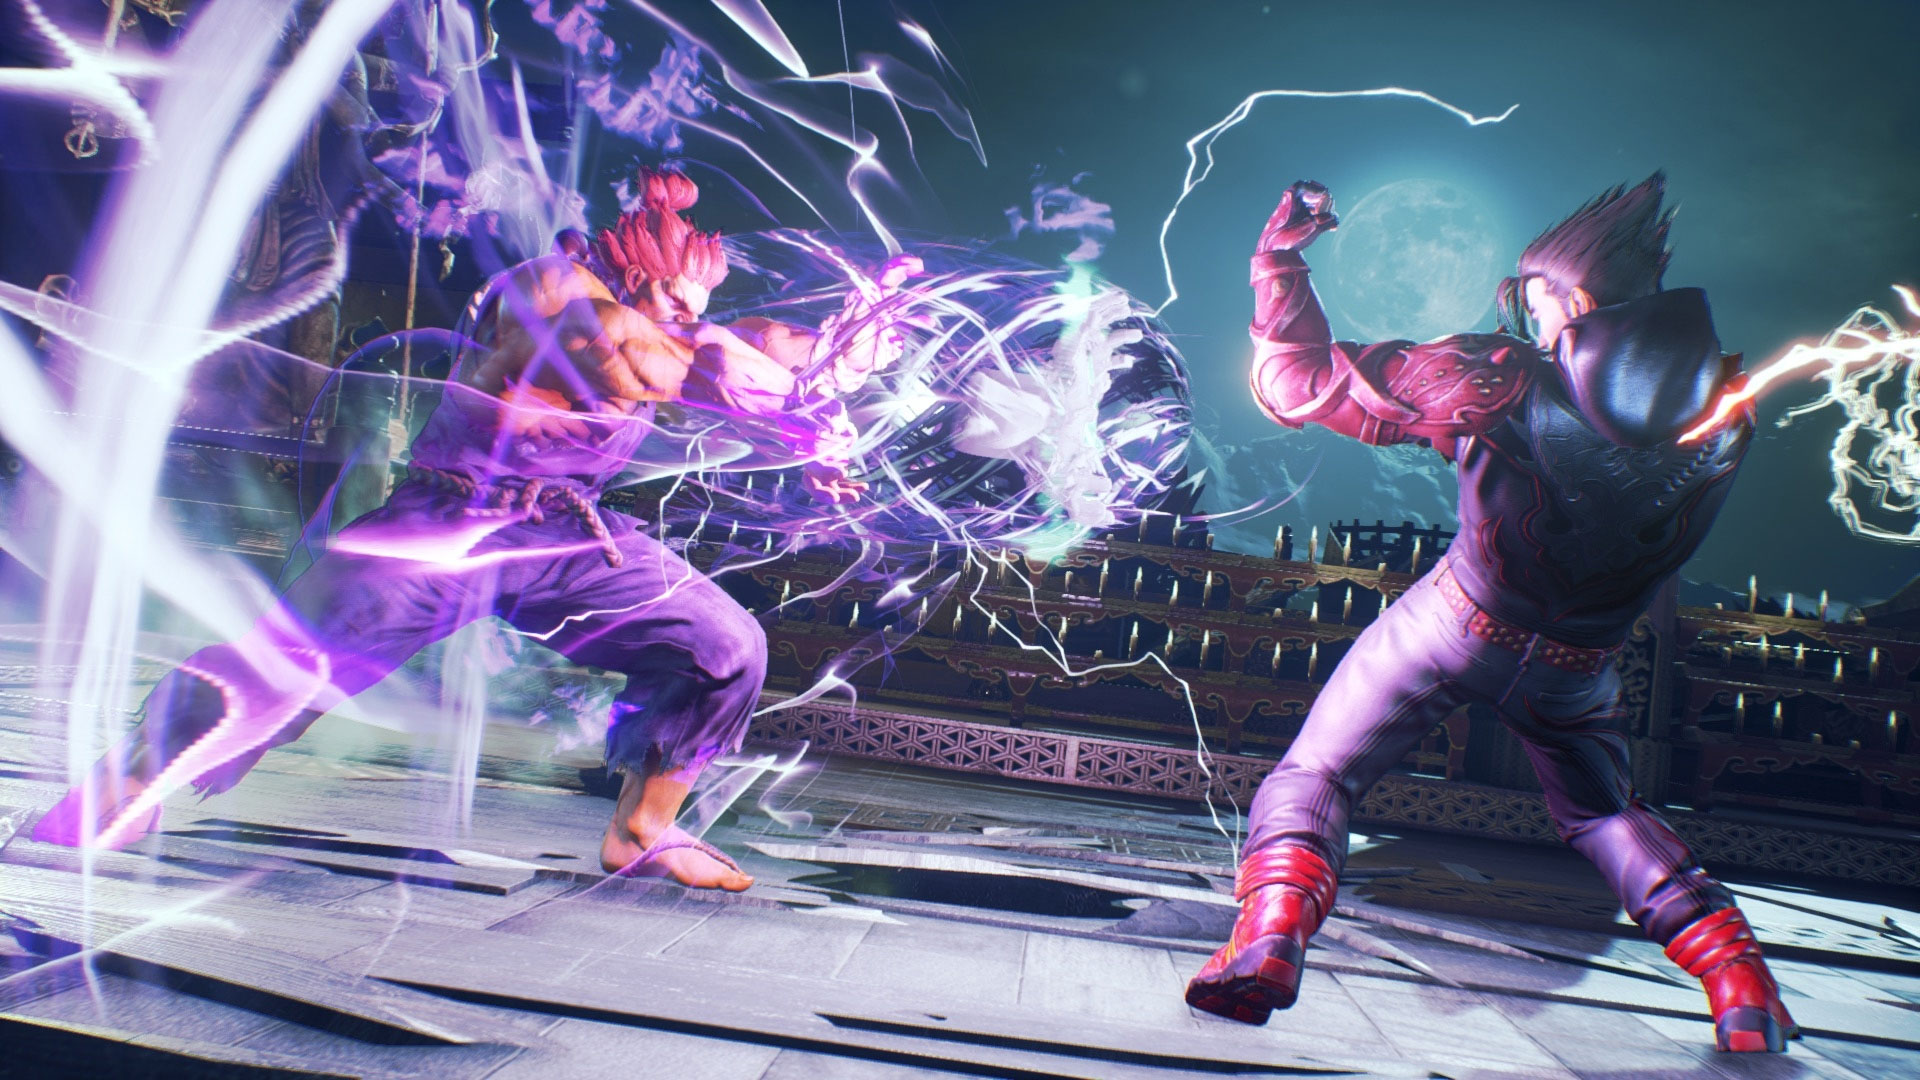 New To Tekken 7? Here's The Defininitive Character Difficulty Tier